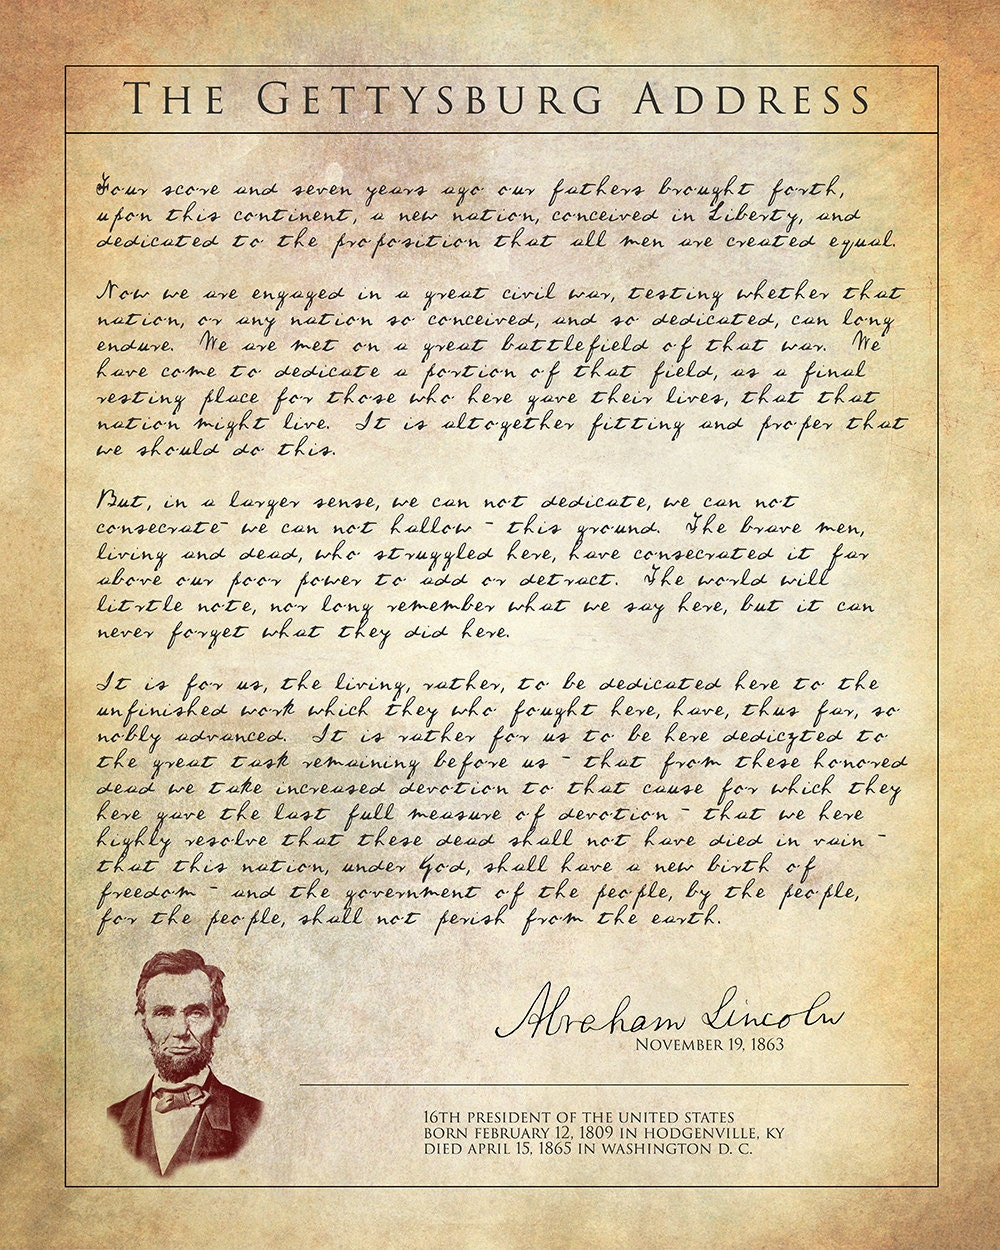 """a paper on abraham lincolns gettysburg address Abraham lincoln on the american union: """"a word fitly spoken""""  particularly the  dbq and essay part of the exam, by guiding them through an analysis of   gettysburg address, as they evaluate and judge lincoln's enduring speech in  light of."""